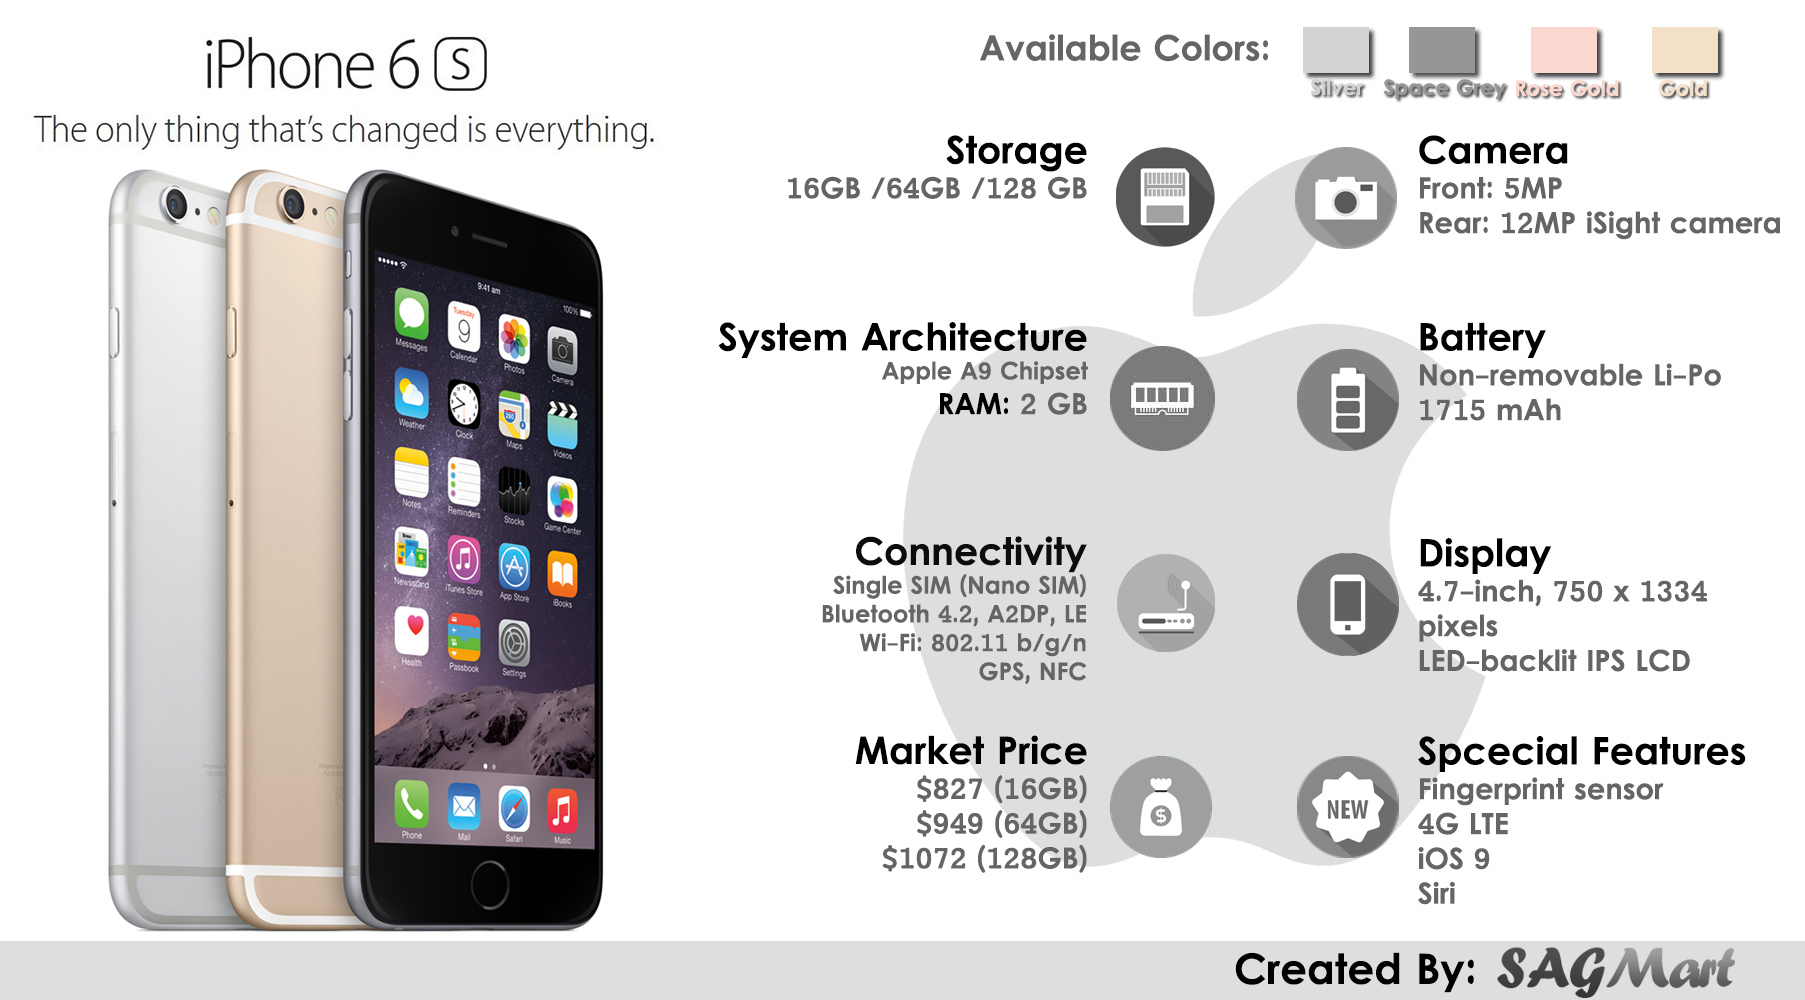 iphone 6s specification apple iphone 6s mobile specifications infographic sagmart 11504